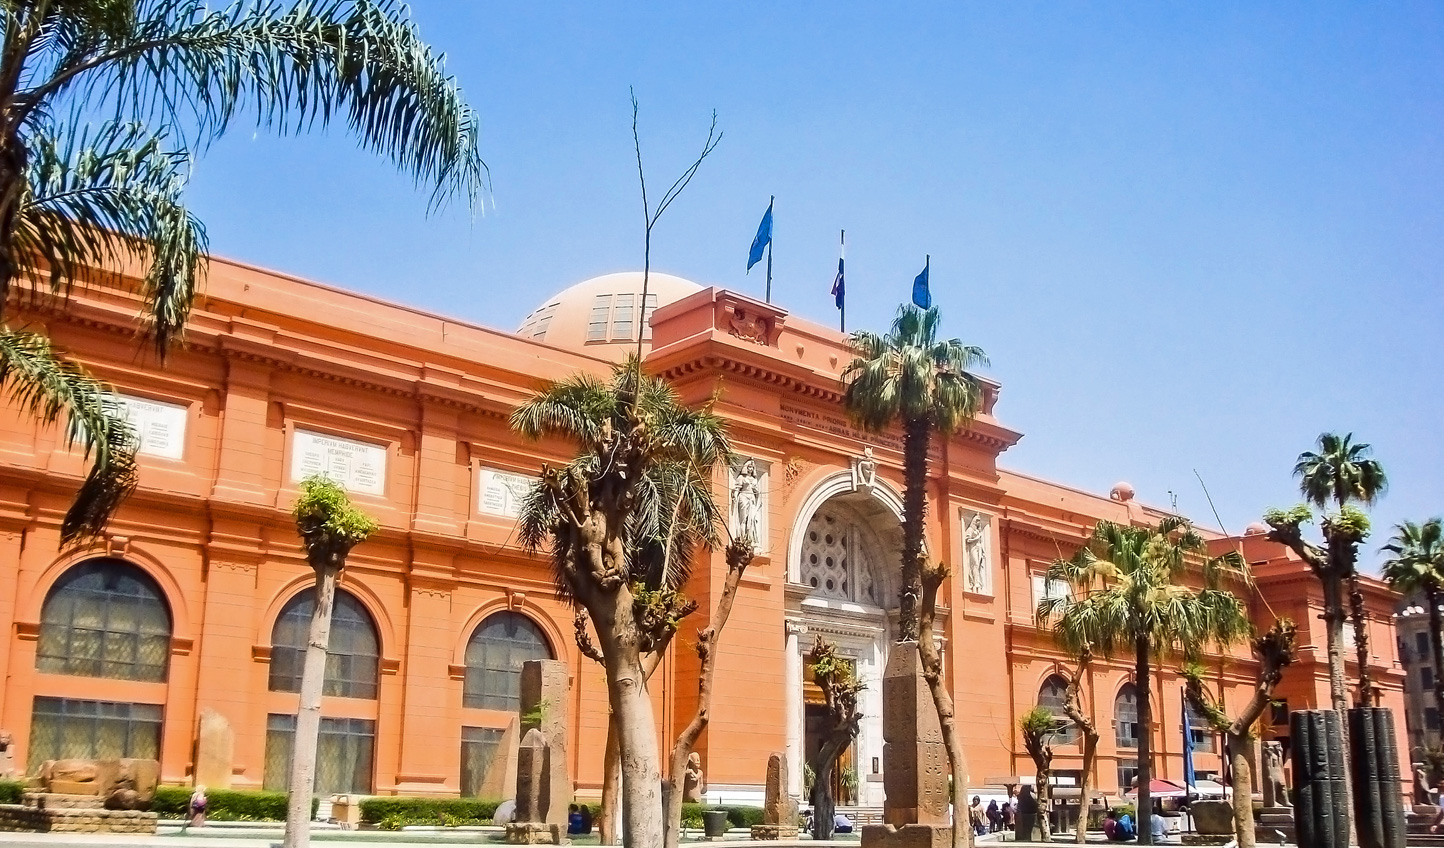 Escape the crowds with an after-hours visit to the Egyptian Museum